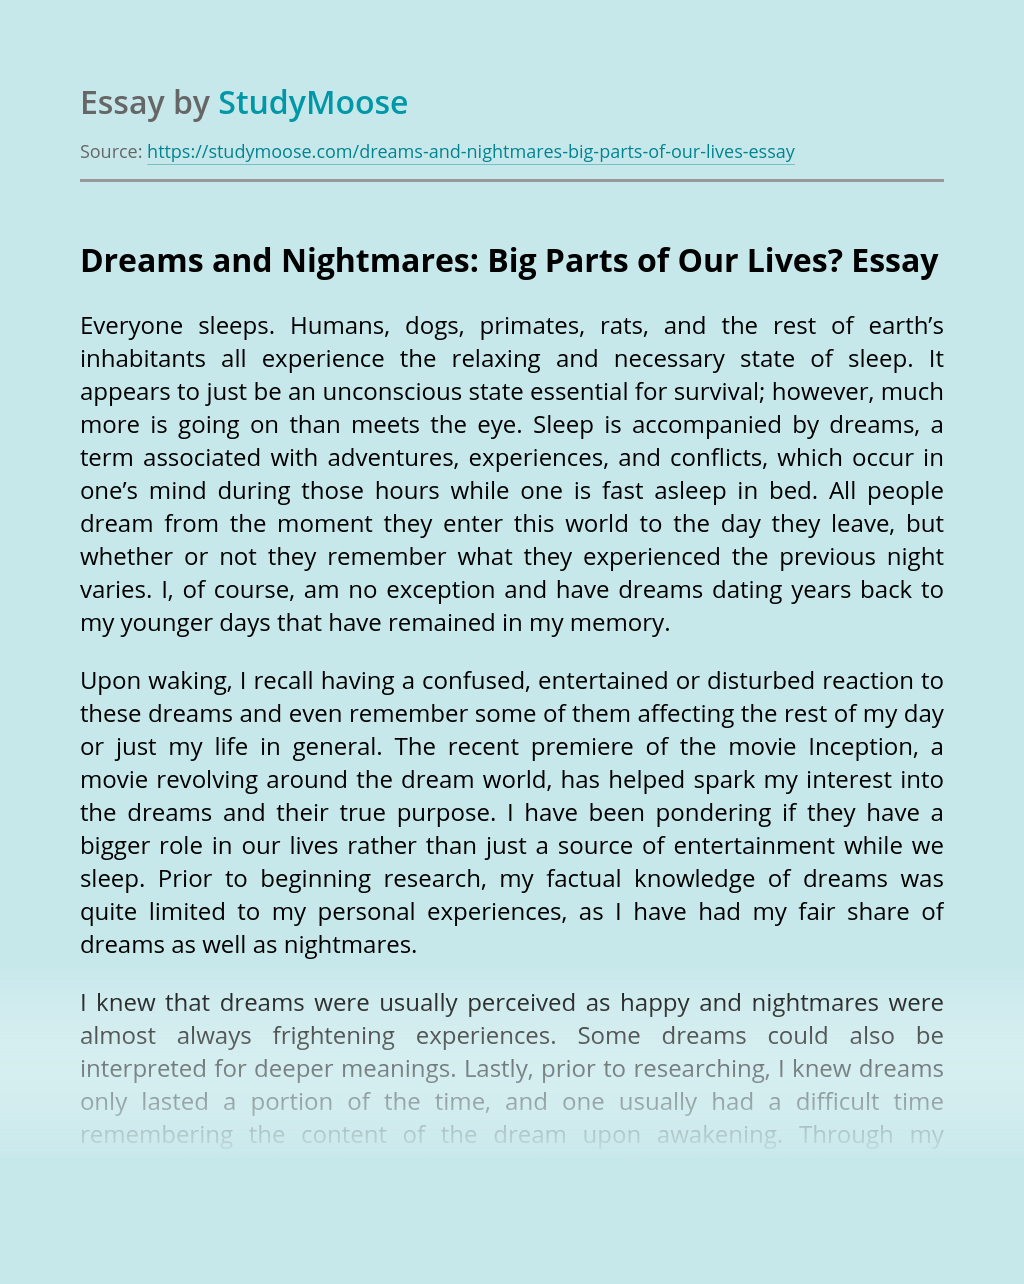 Dreams and Nightmares: Big Parts of Our Lives?